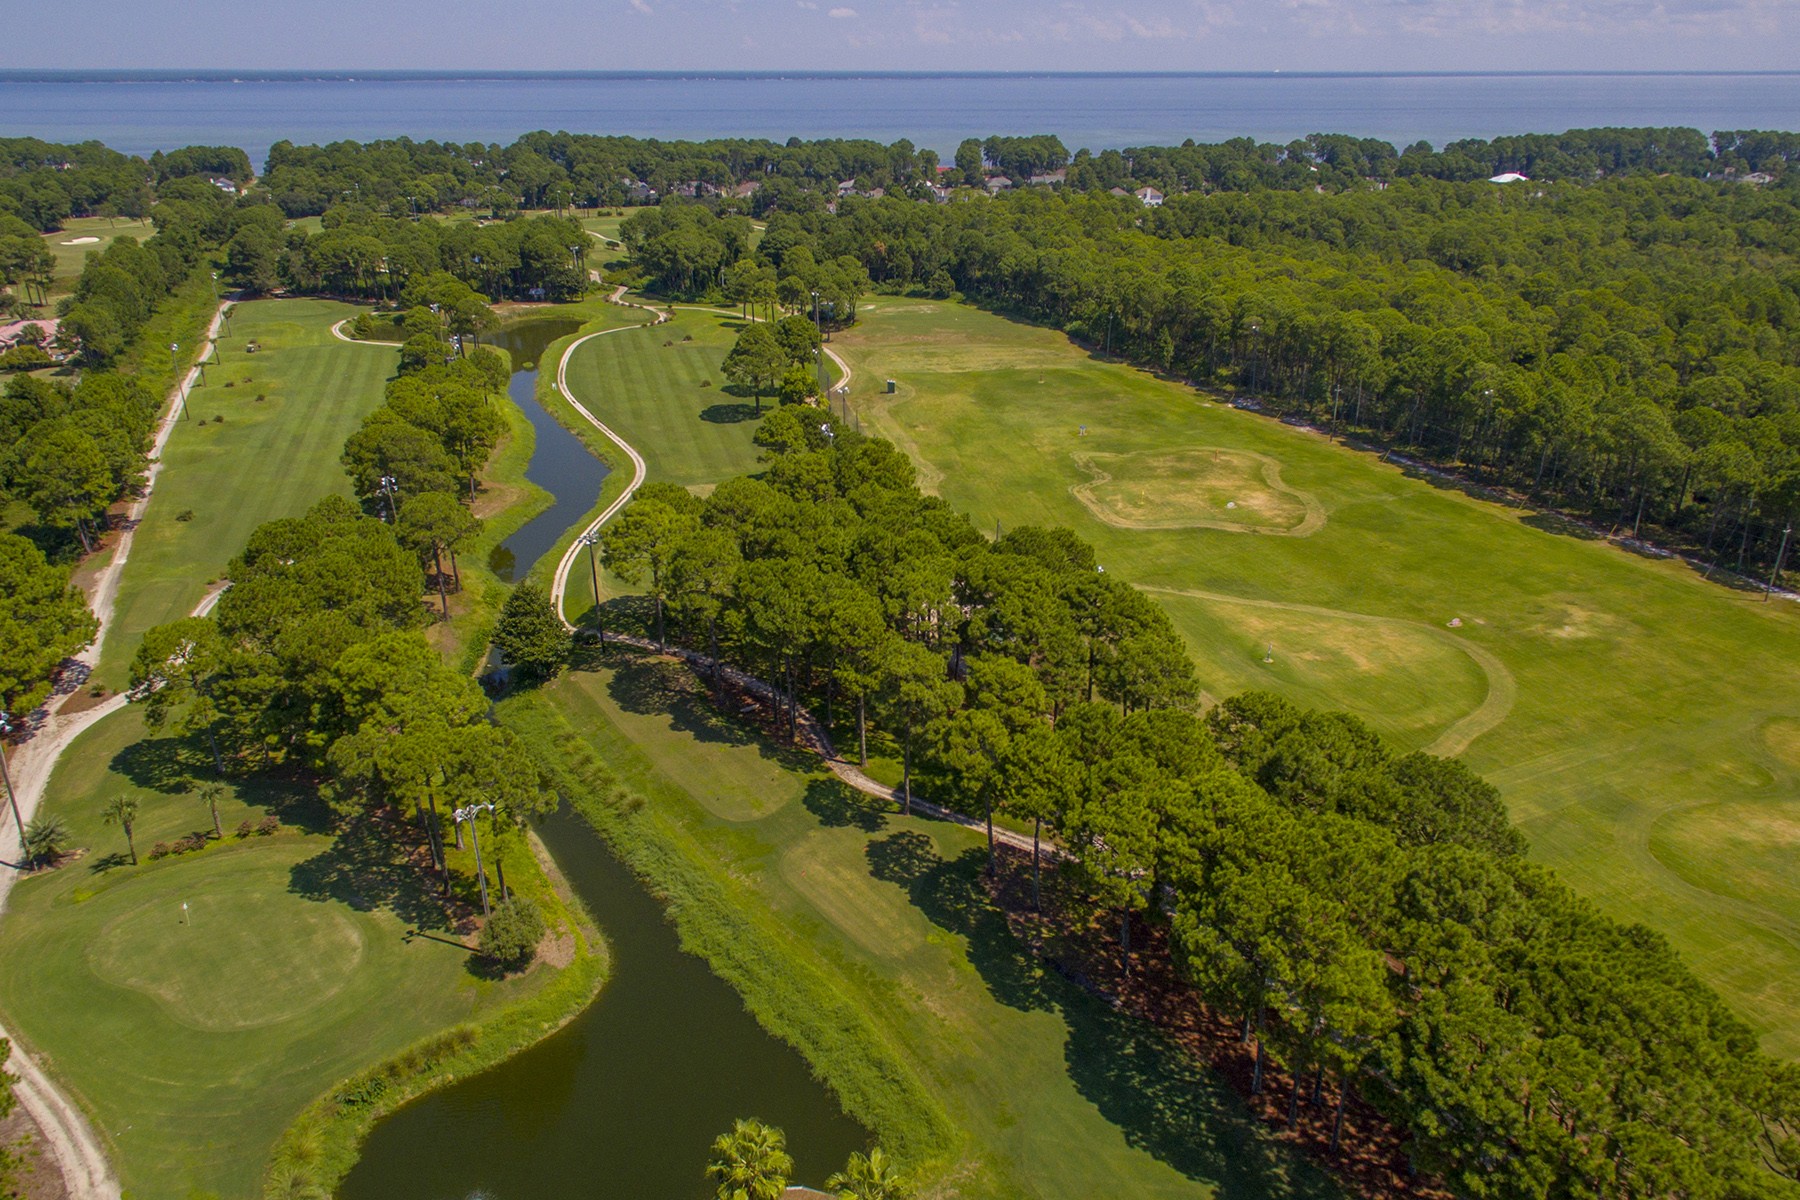 Земля для того Продажа на RARE GOLF PROPERTY IS LAST OF ITS KIND 12958 W US Highway 98 Miramar Beach, Флорида, 32550 Соединенные Штаты